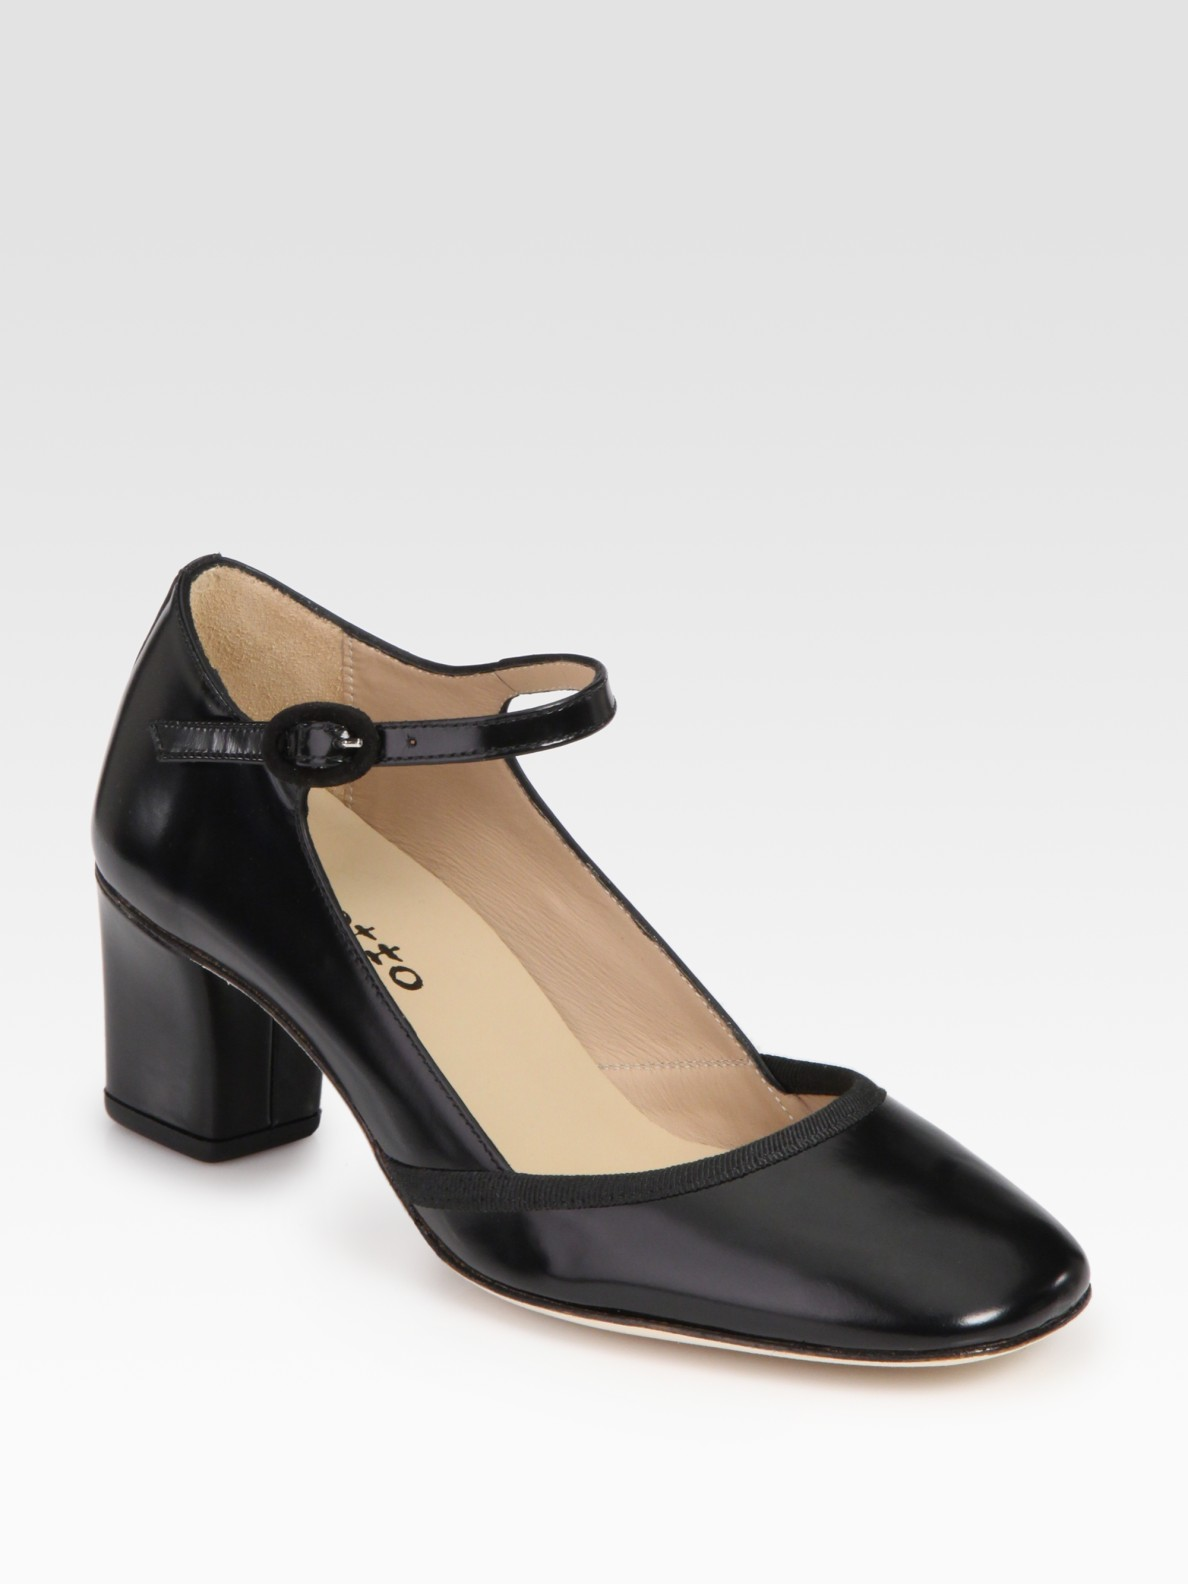 Repetto Leather Mary Jane Pumps cheap online sale best GCADp0E3y